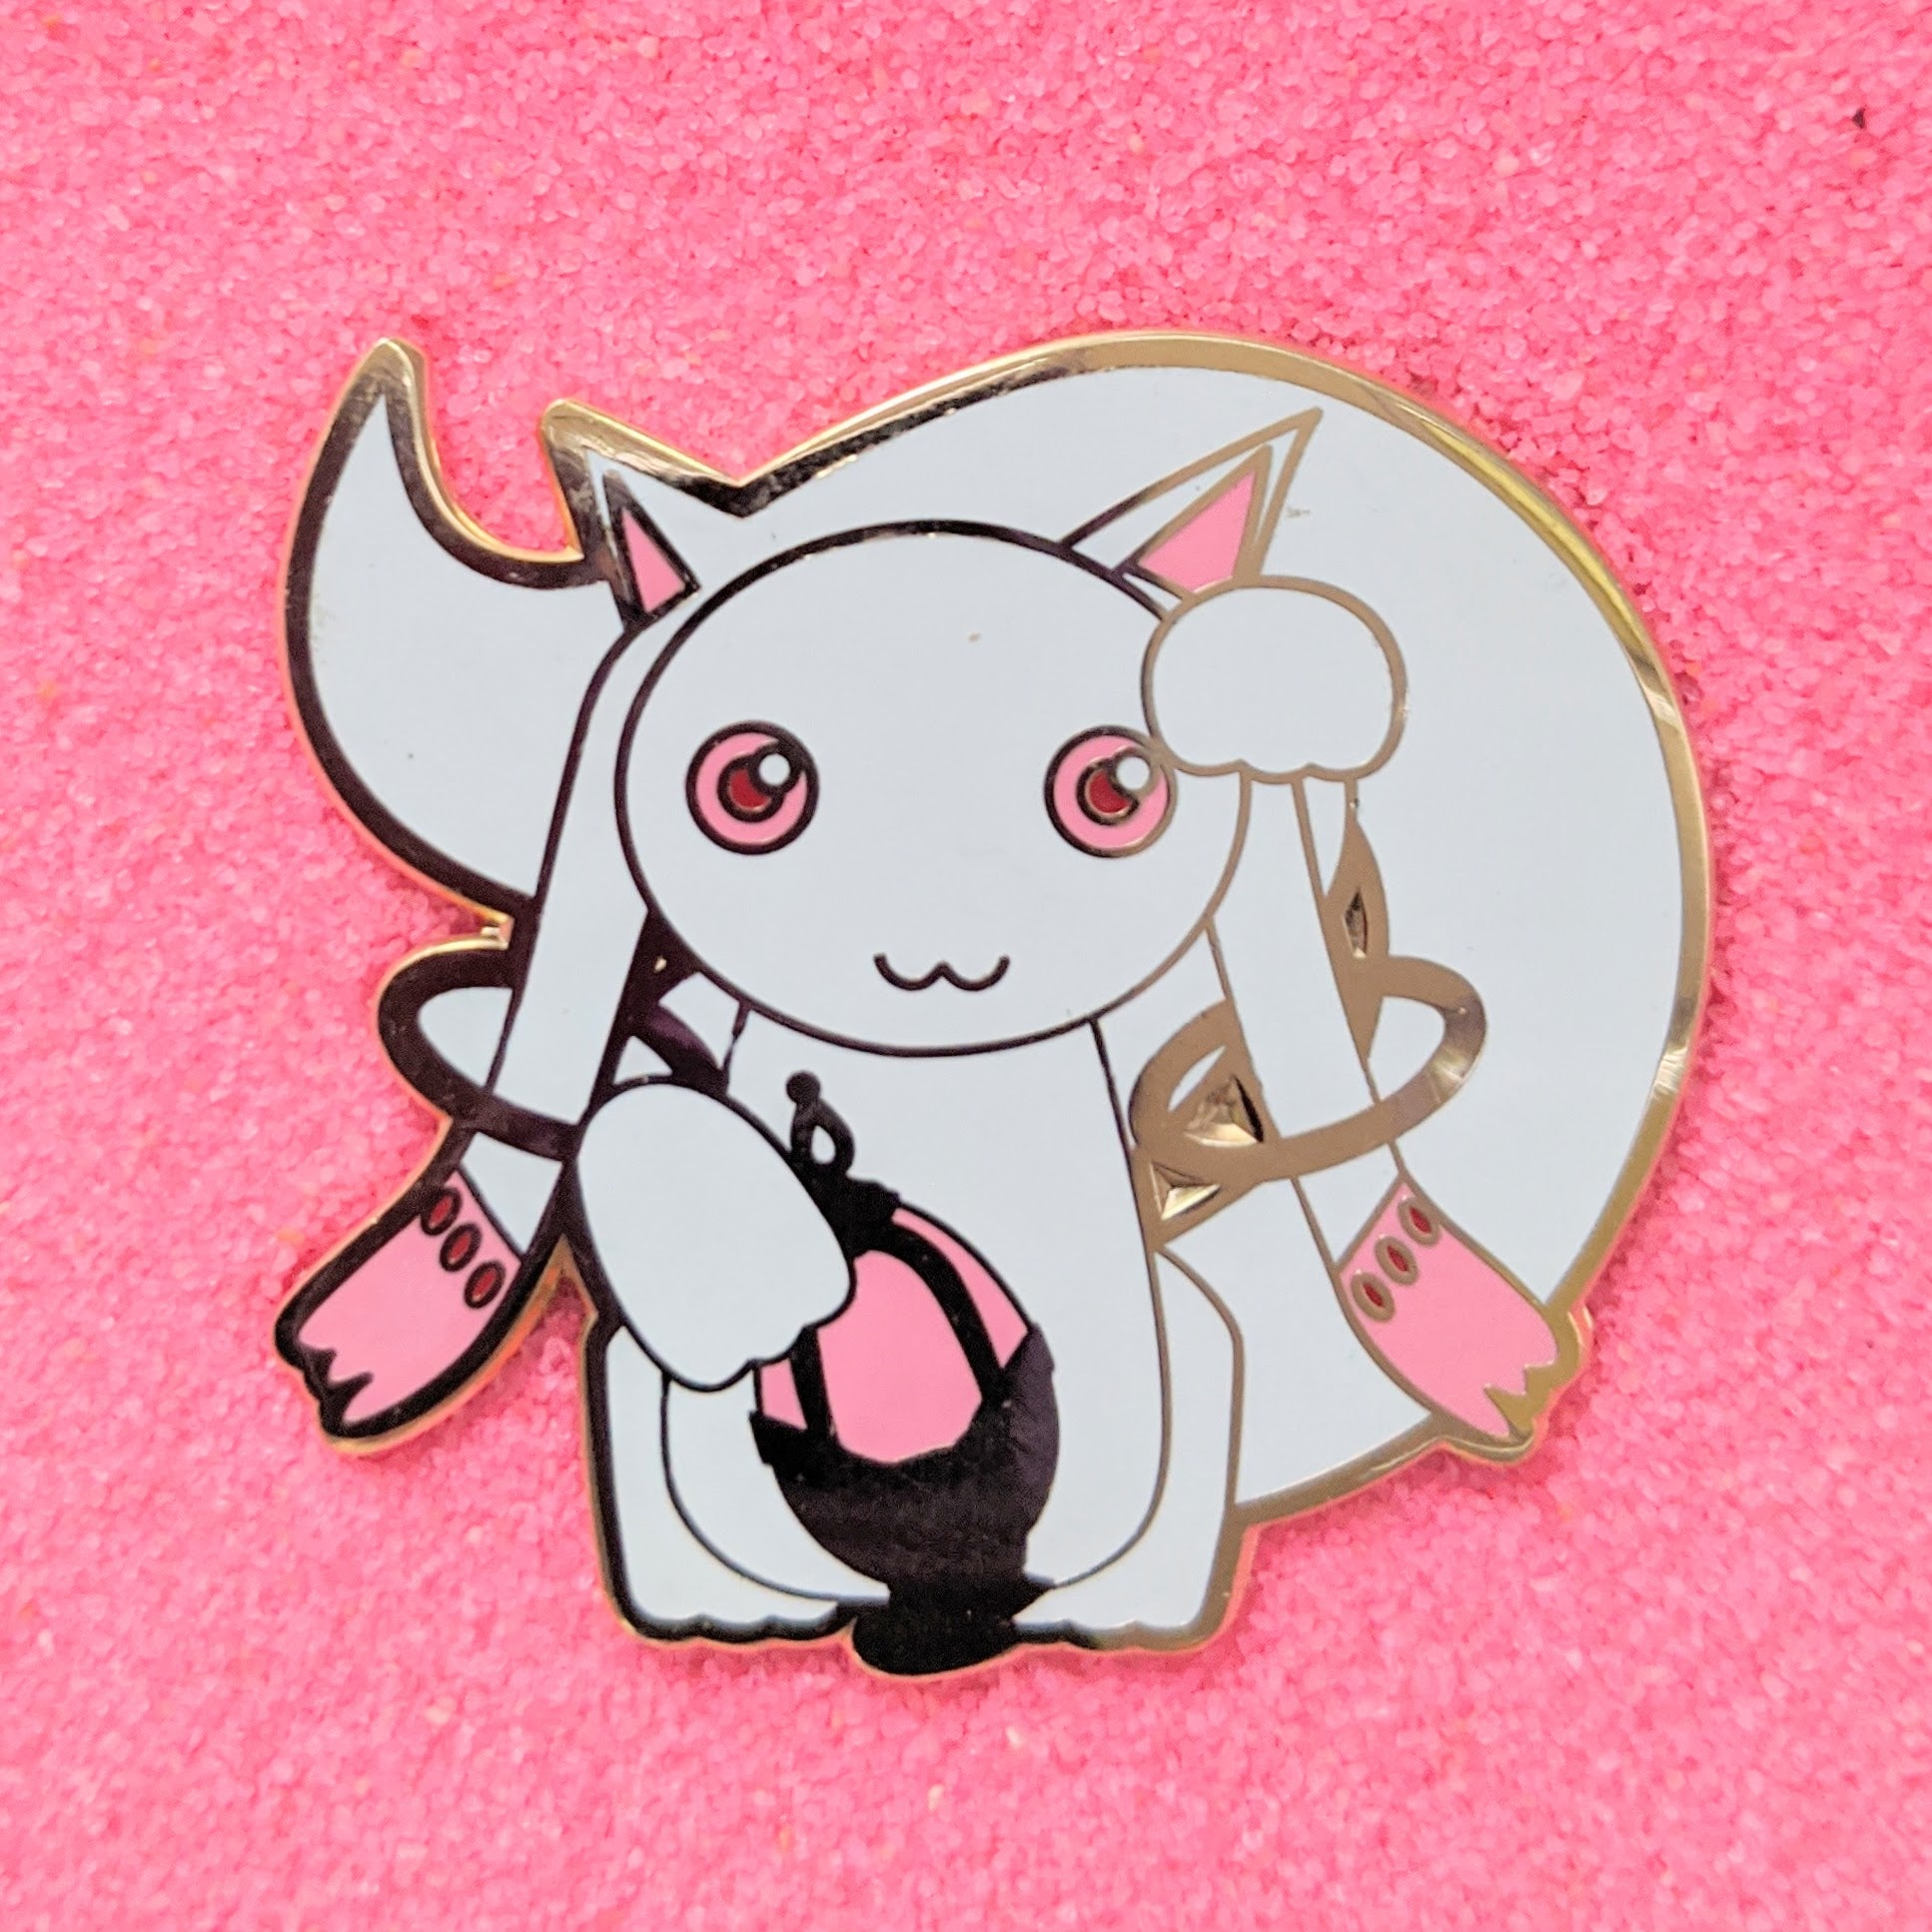 Maneki Neko Lucky Cat Kyubey - Enamel Pin